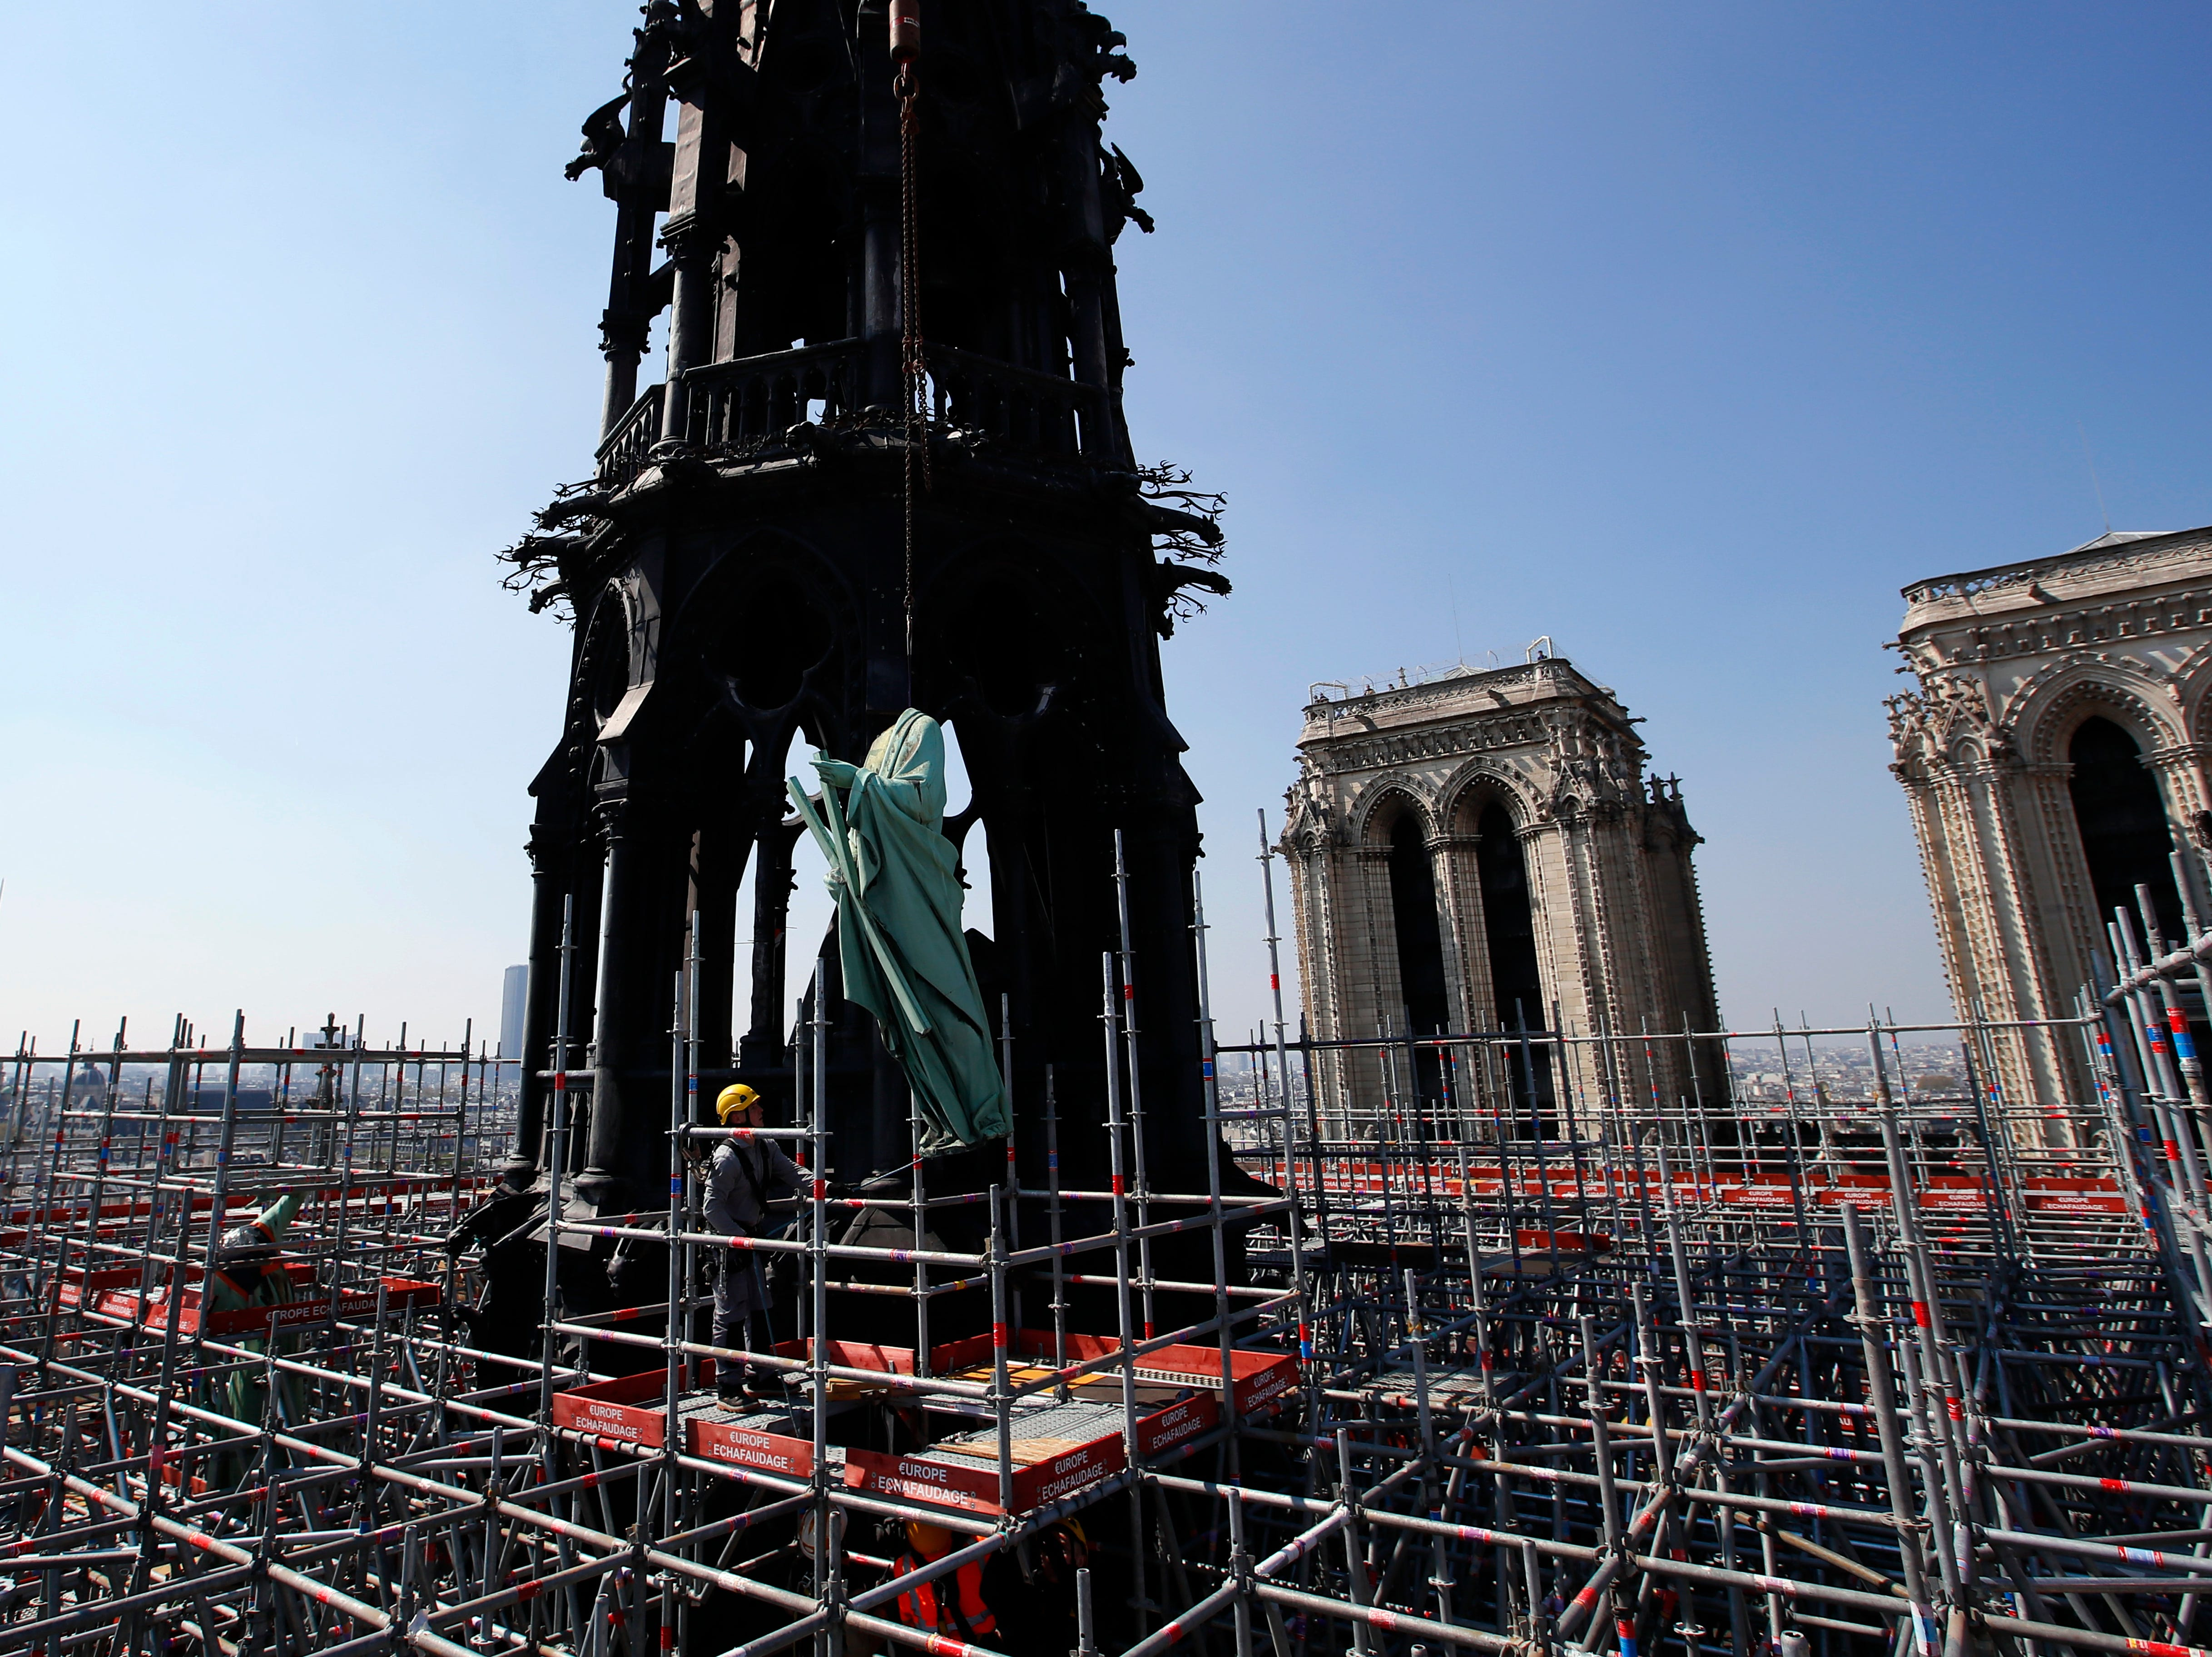 The religious statue representing St. Andrew perched atop Paris' Notre Dame Cathedral descends to earth for the first time in over a century as part of a restoration, in Paris Thursday, April 11, 2019. The 16 greenish-gray copper statues, which represent the twelve apostles and four evangelists, are lowered by a 100 meter (105 yard) crane onto a truck to be taken for restoration in southwestern France.